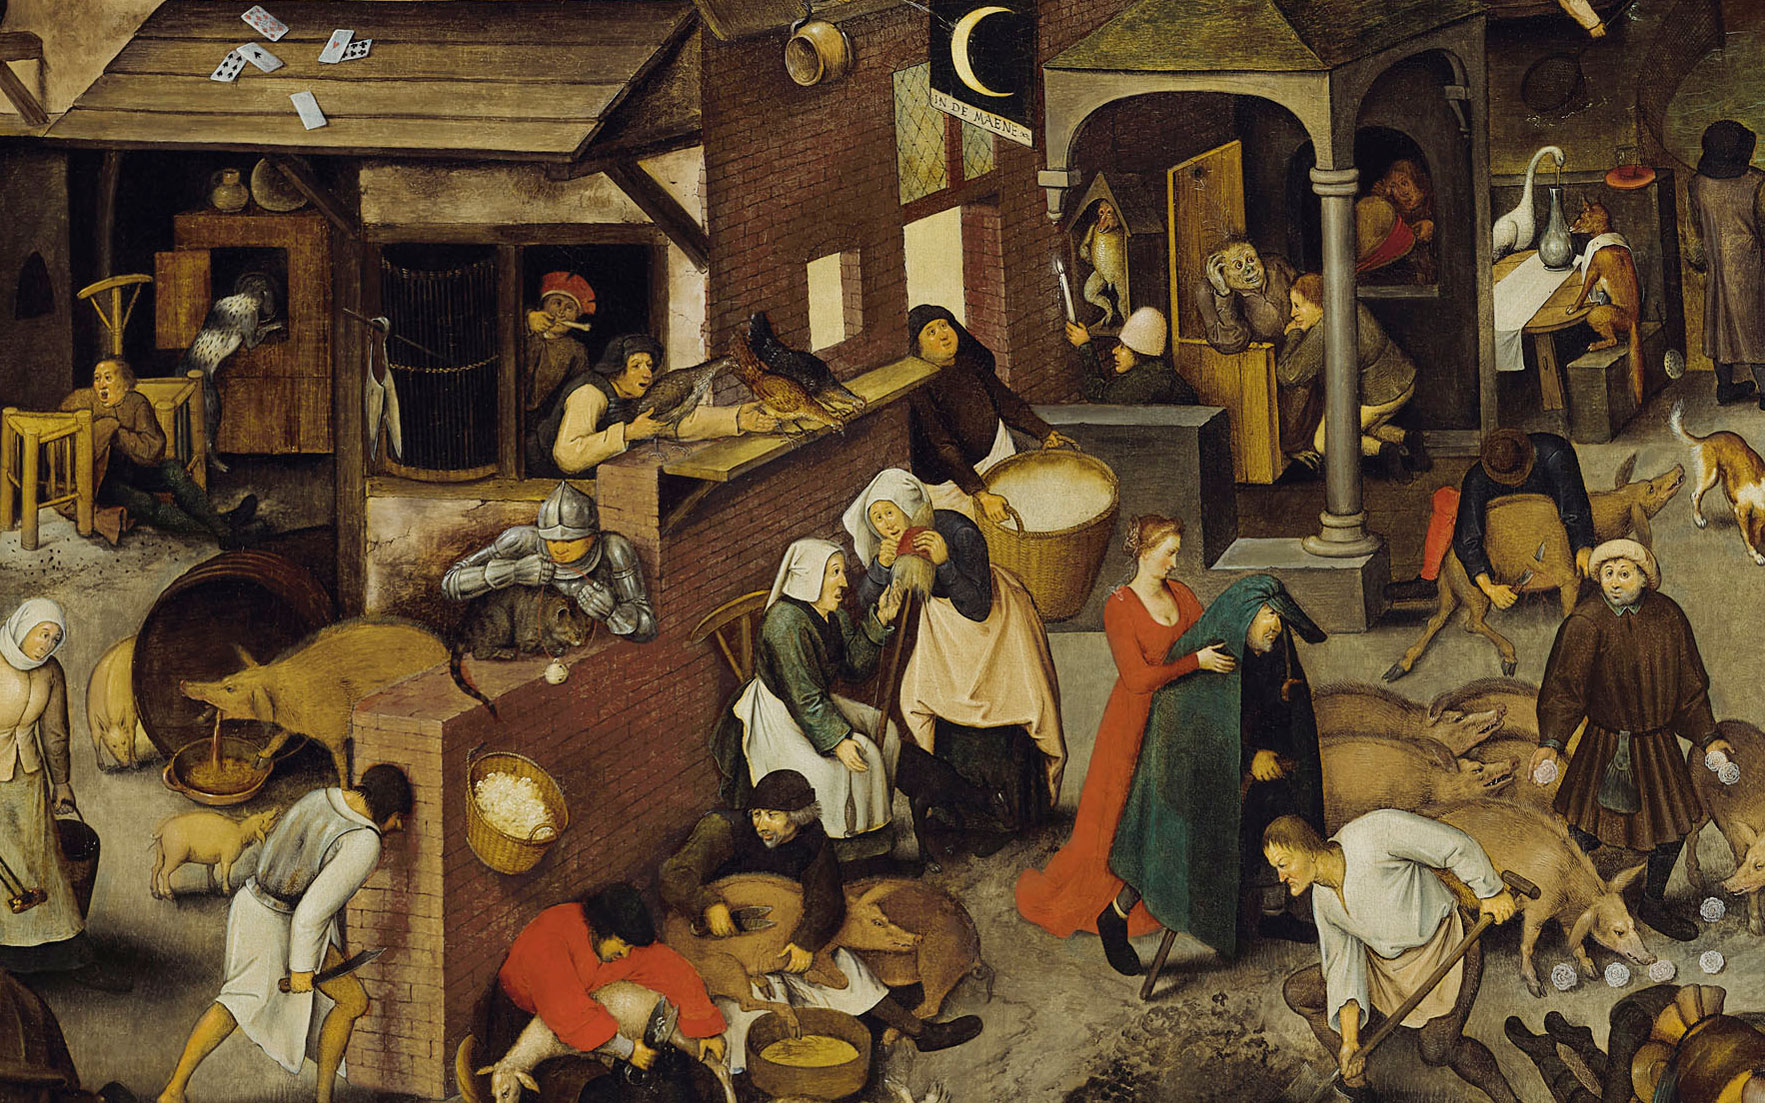 (Detail of) Pieter Brueghel, the Younger (15645-16378), The Netherlandish Proverbs. 47¾ x 65⅝  in (121.3 x 166.7  cm). Sold for £6,308,750 in Old Masters Evening Sale on 6 December